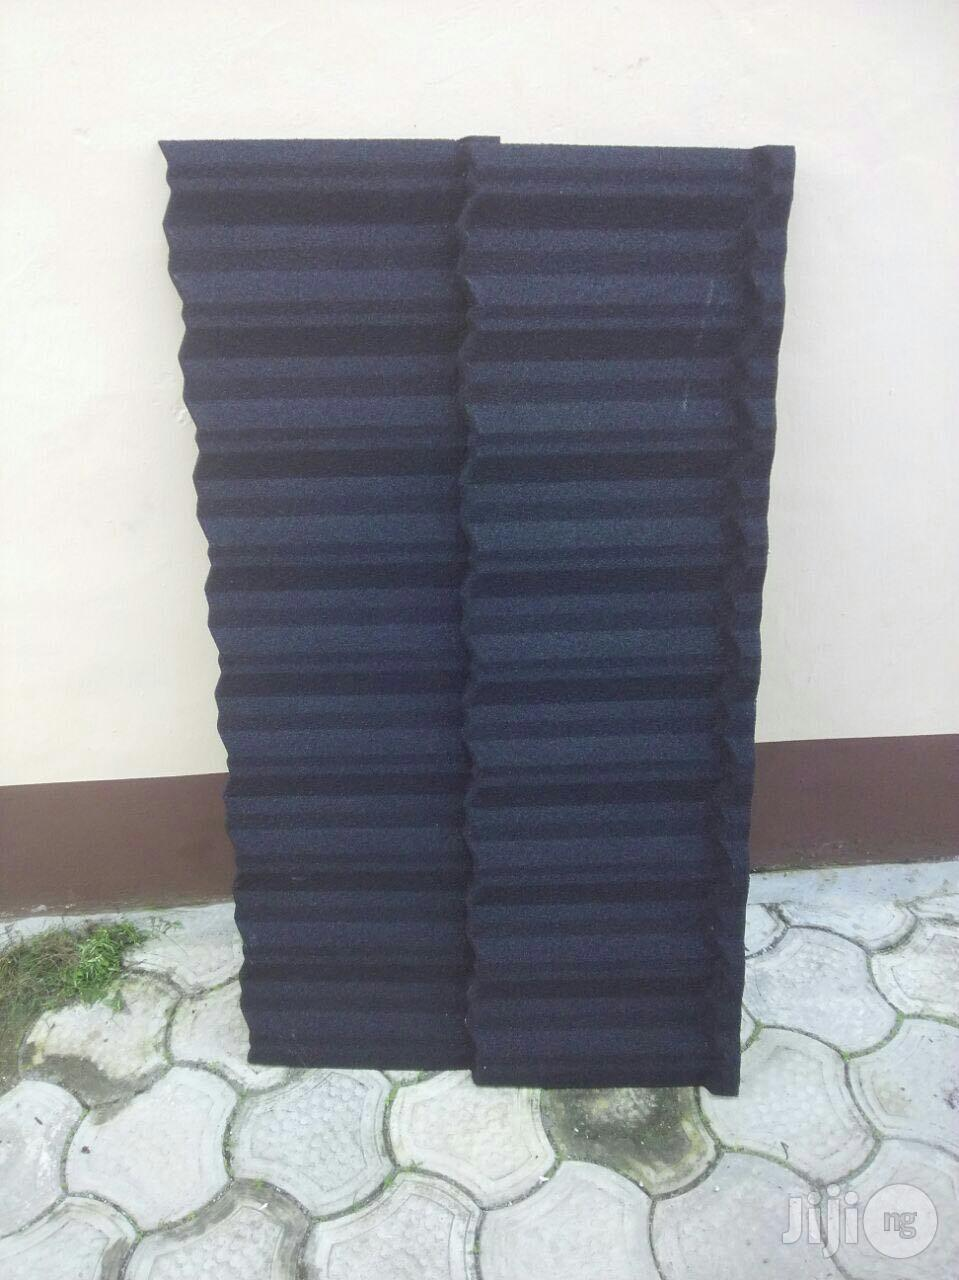 Stone Coated Roofing Tiles   Building Materials for sale in Lekki, Lagos State, Nigeria